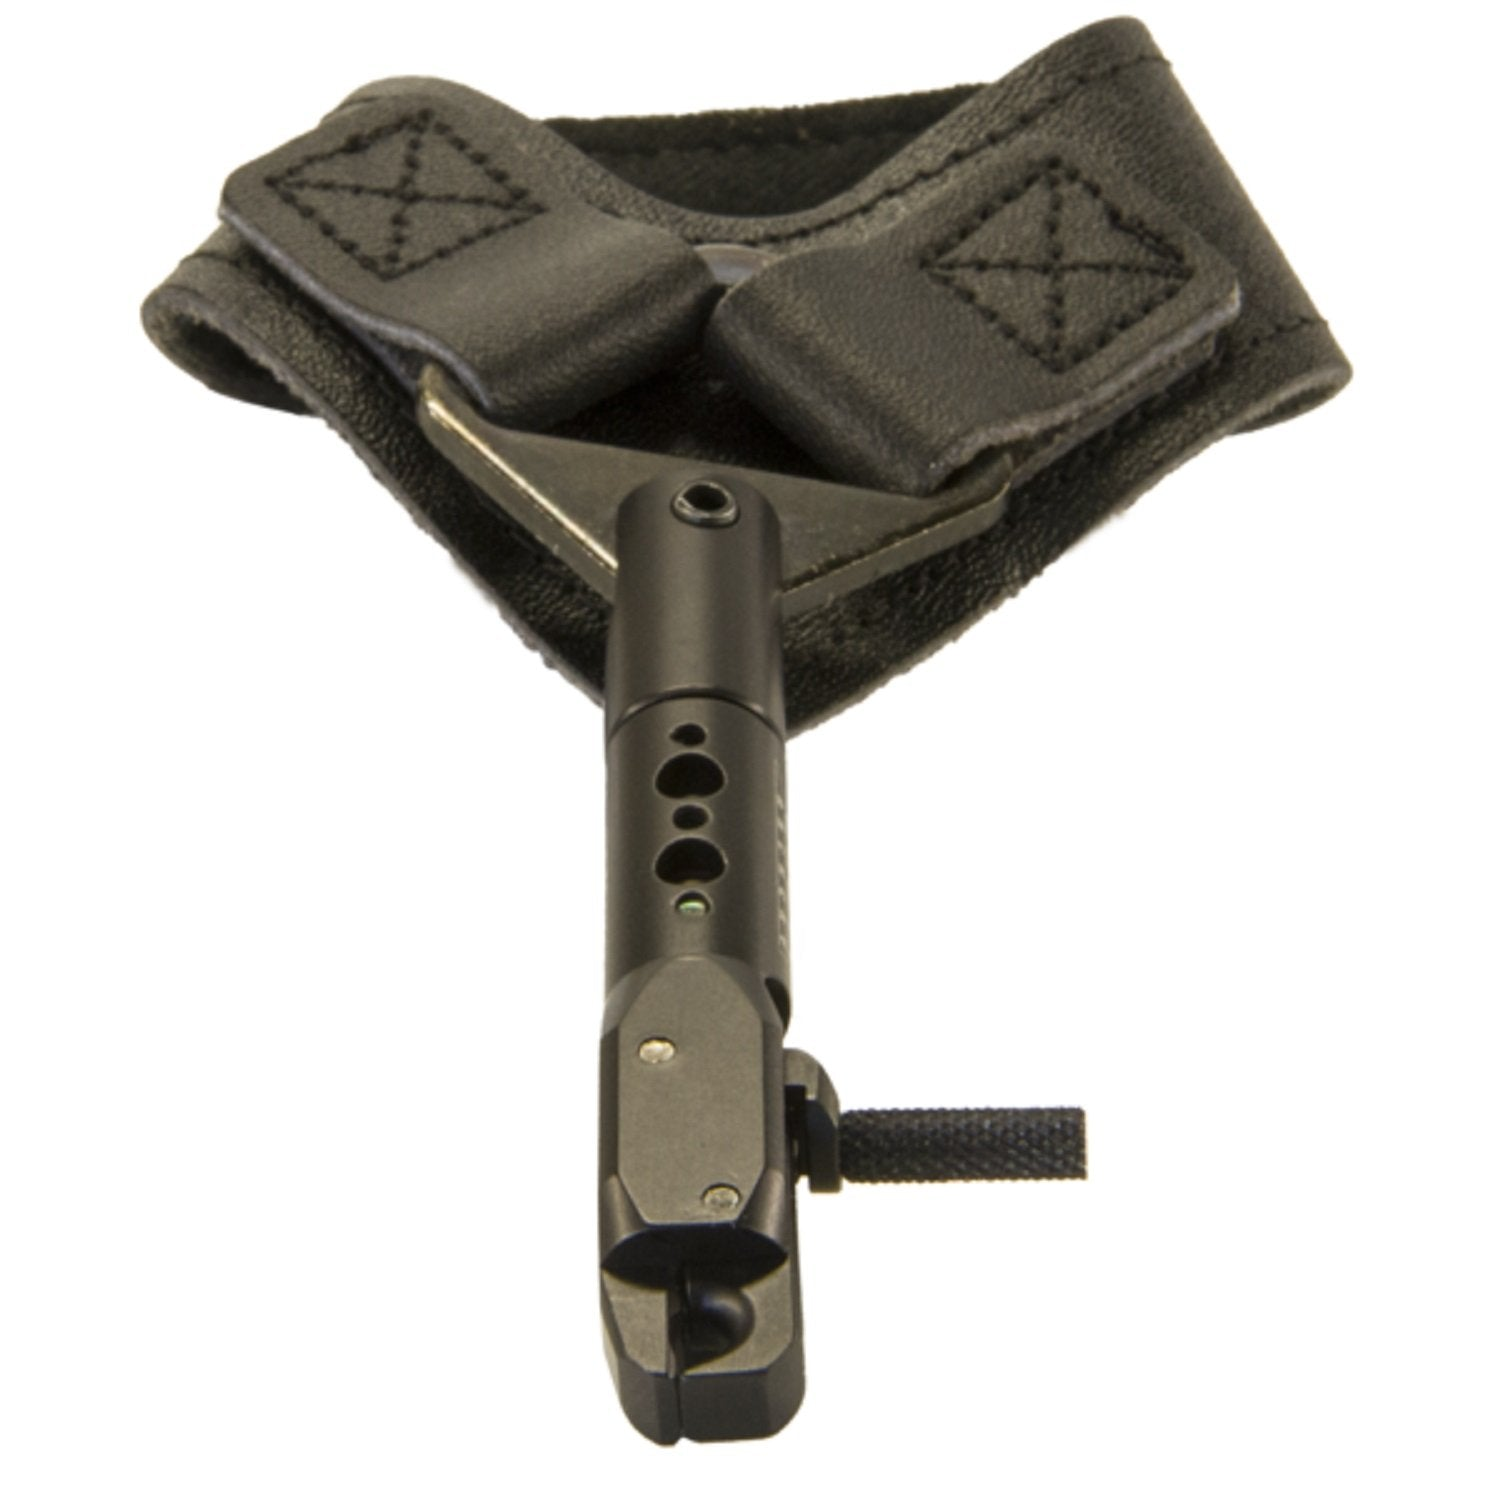 Scott Archery Little Goose Release - Buckle Strap - Black